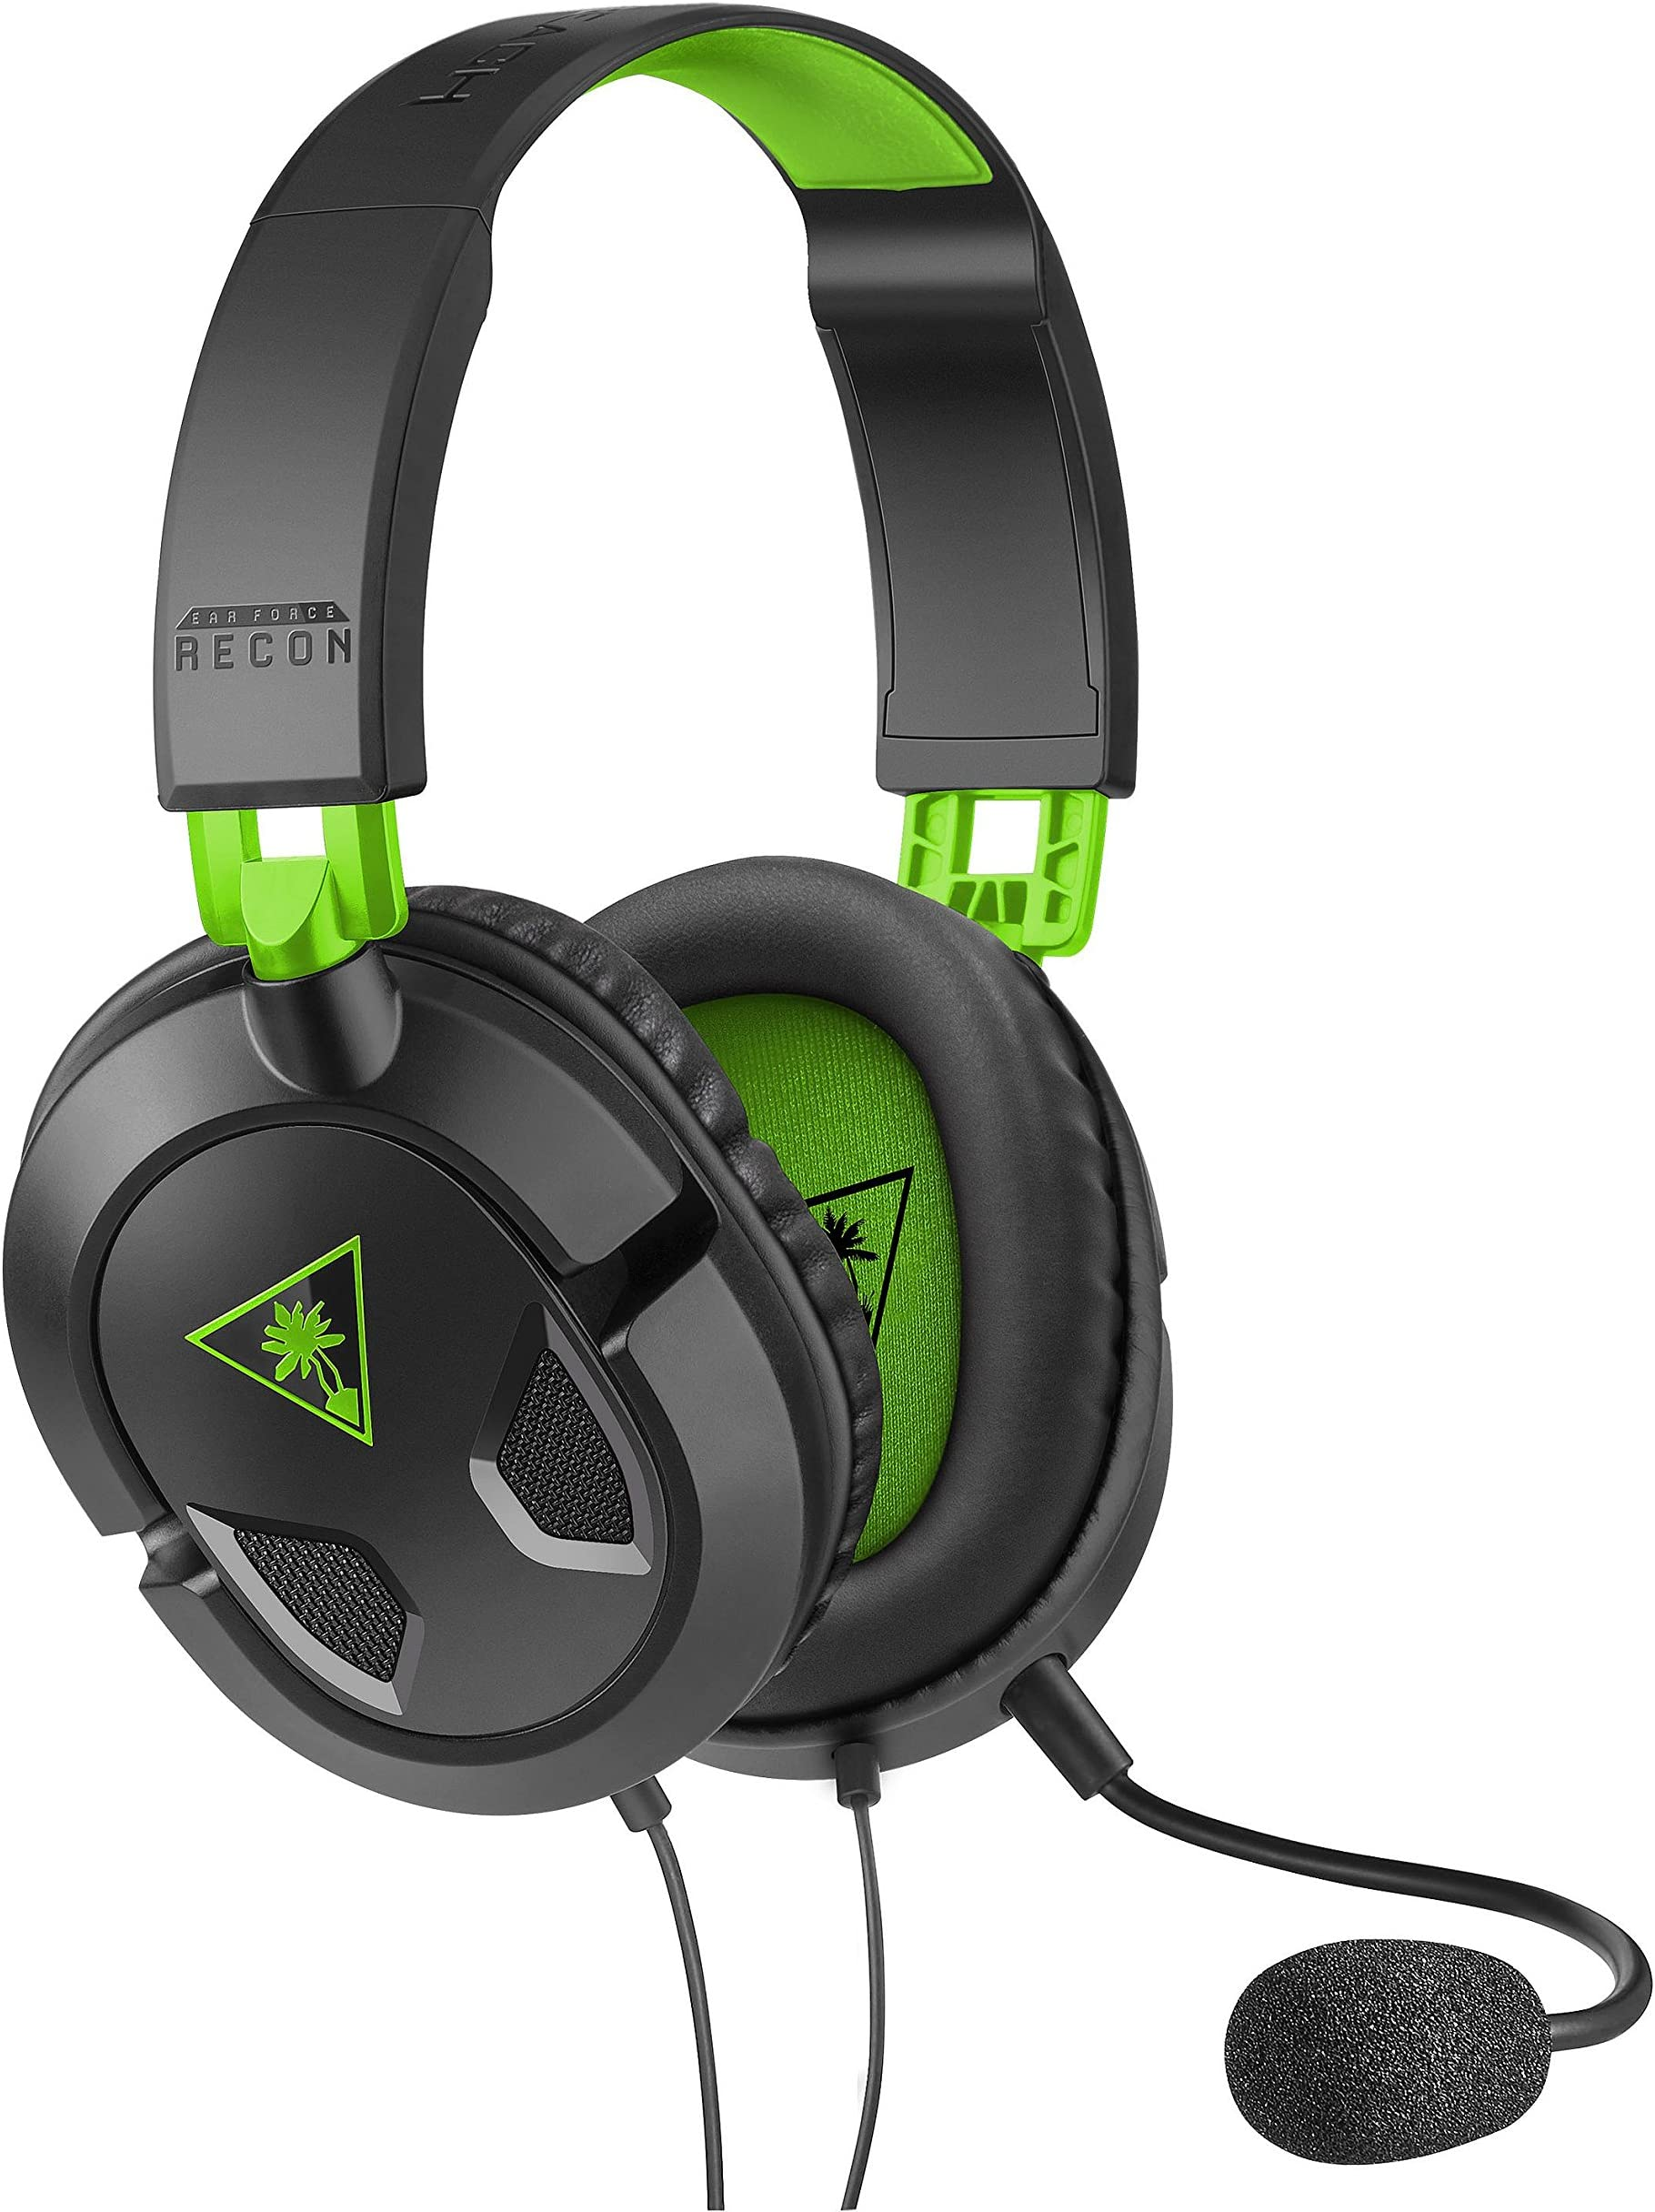 81XNjtumyoL._AC_ amazon com turtle beach ear force recon 50x stereo gaming headset